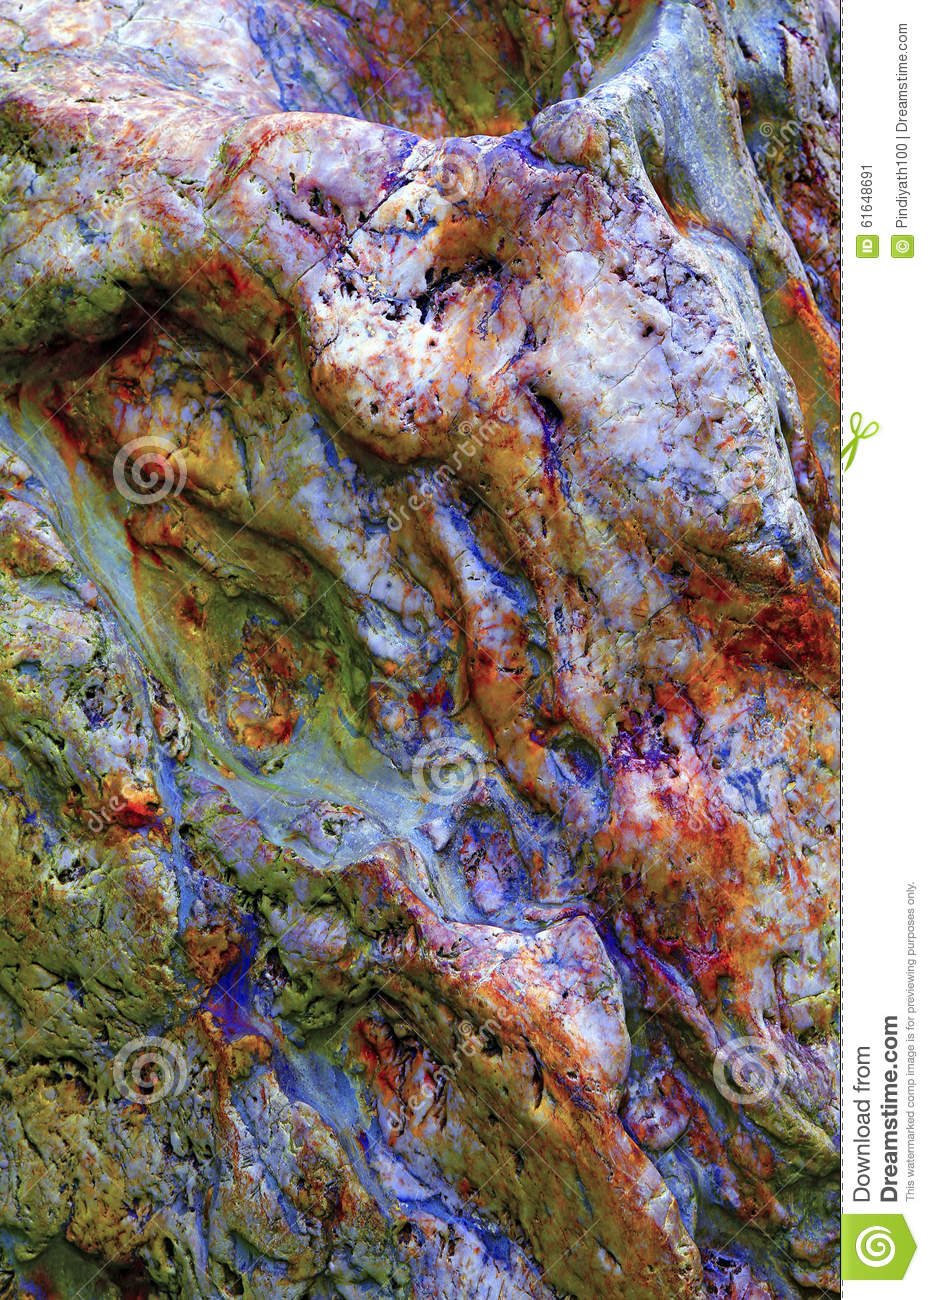 Color Of Marble Rock : Colorful marble rock background stock image